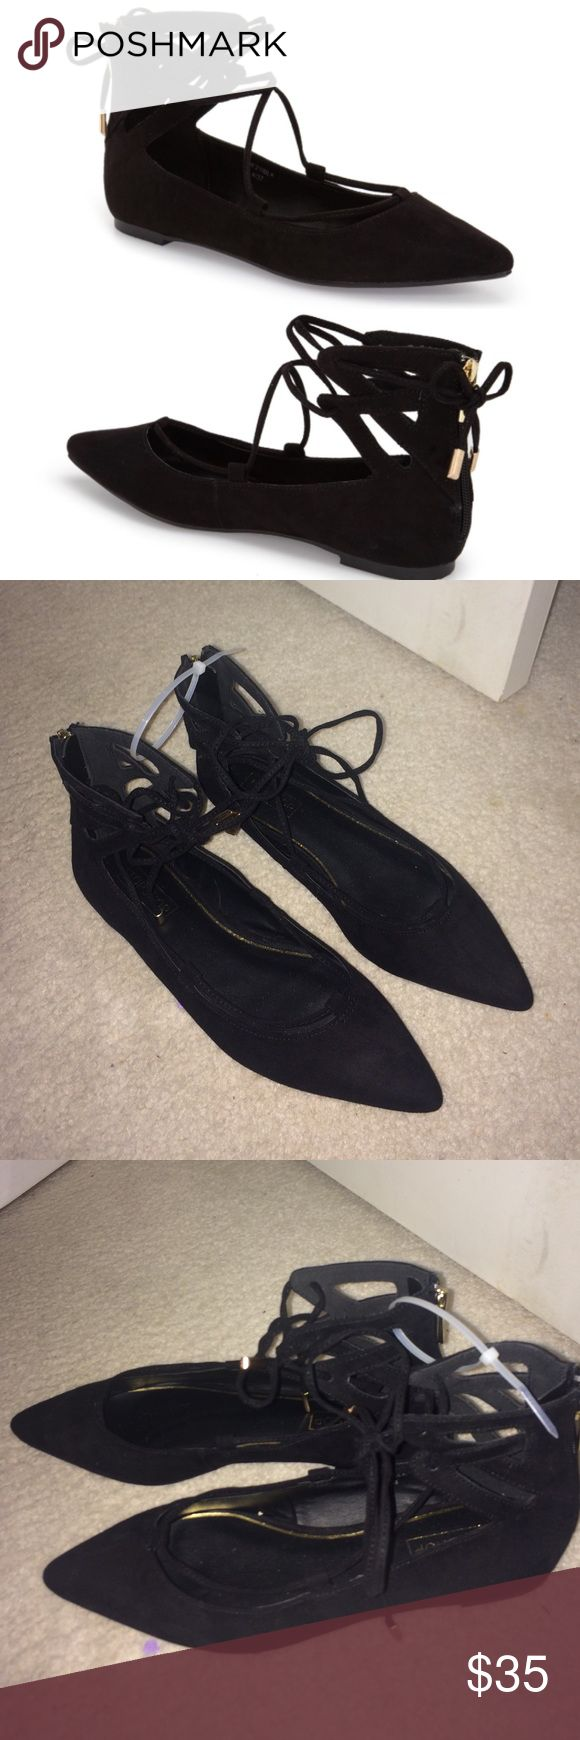 """NEW Topshop Lace Up black suede ballet Flats 7.5 NEW Black suede topshop Lace-Up Pointy Toe Flat (Women). Super cute gold hardware with zip up back detailing. Never worn. Size U.K. 6 which is a US 7.5. Metal-tipped ghillie laces crisscross the open top of a pointy-toe flat styled with geometric cutouts at the ankle. 4 3/4"""" back height. Back zip closure; adjustable laces. Trendy and great for everyday.  Textile upper/synthetic lining/rubber sole. Topshop Shoes Flats & Loafers"""